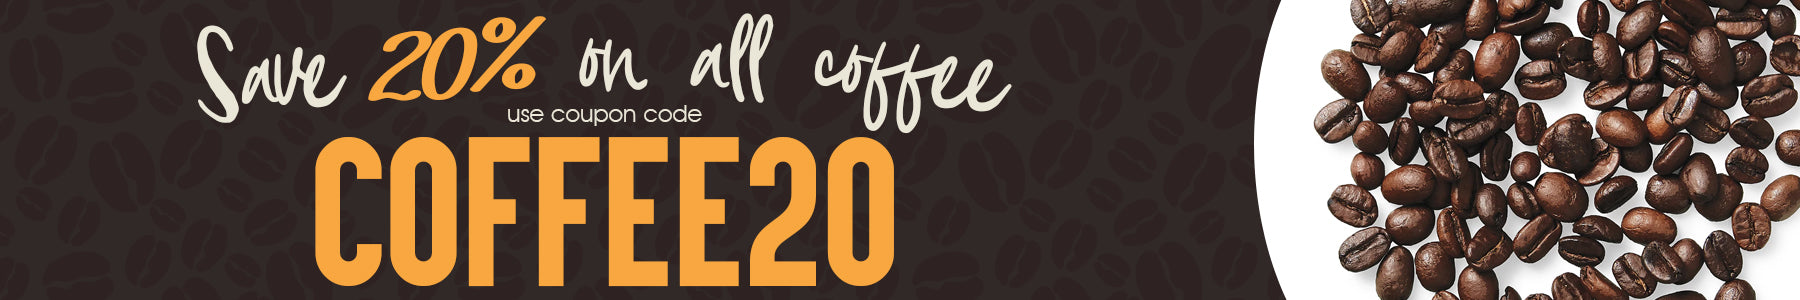 Save 20% On Coffee Products! Dealsociety.com